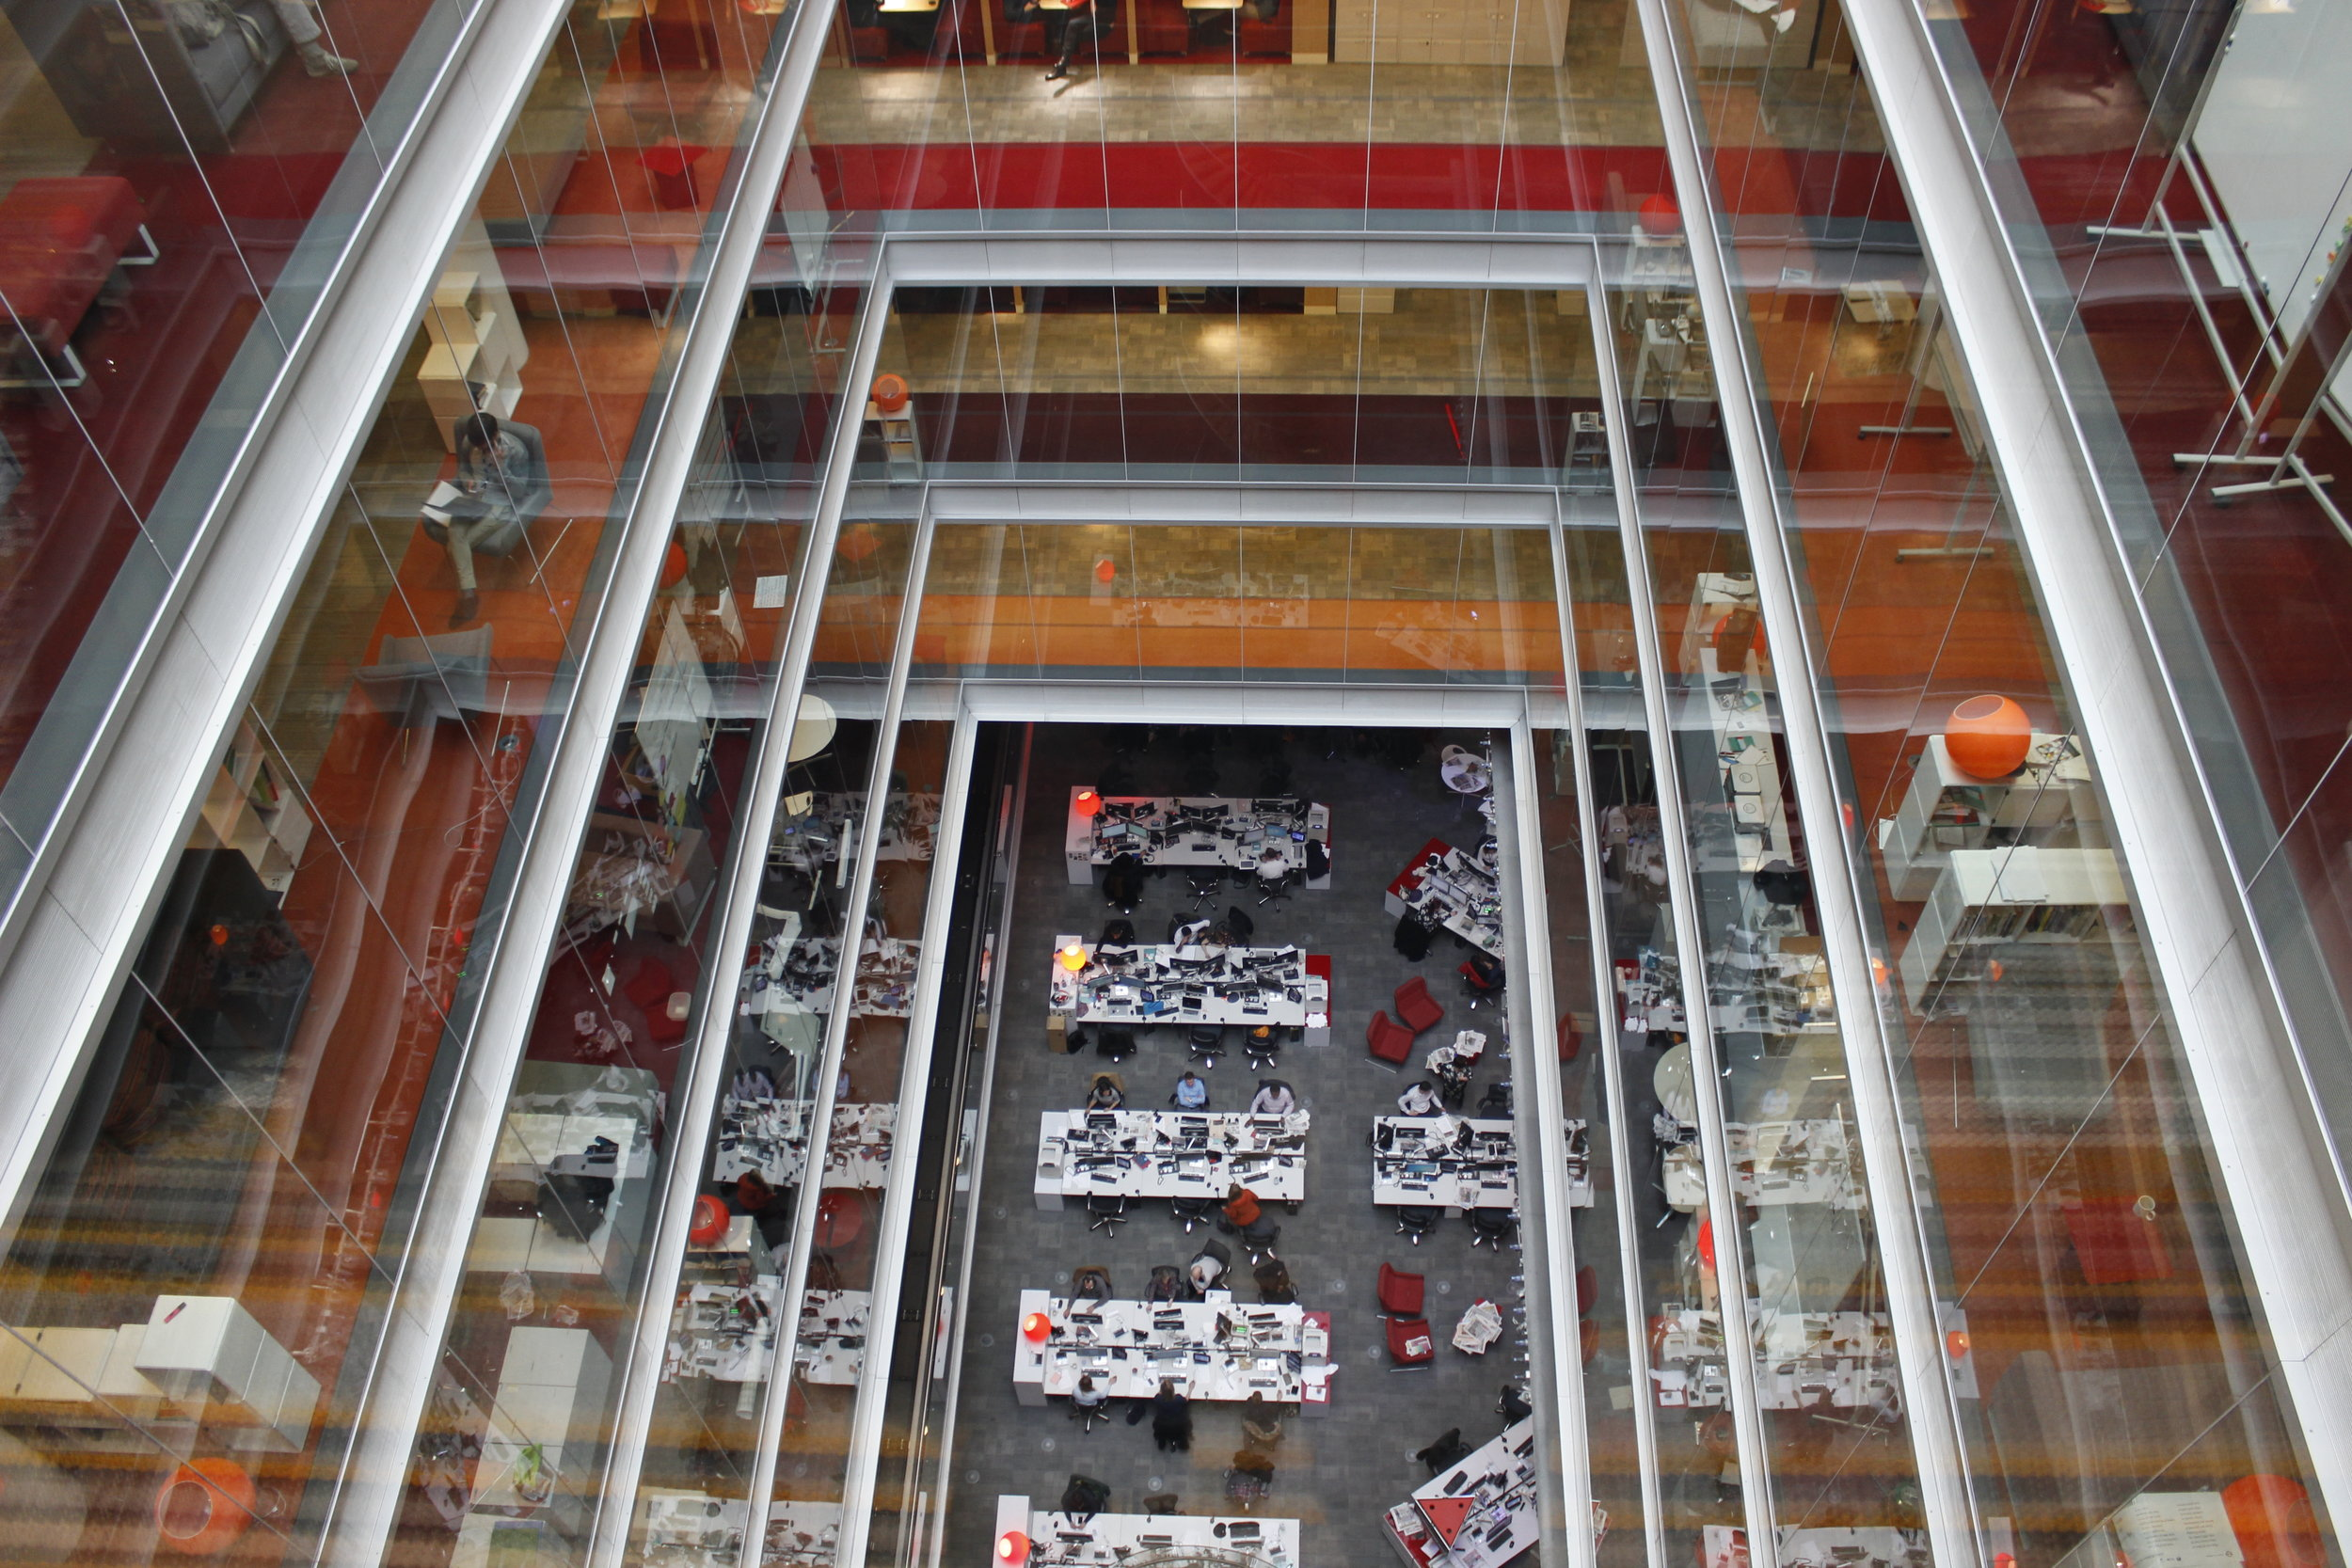 Atrium view of the BBC's Newsroom in Central London during our Big Data for Media Tour in 2017.